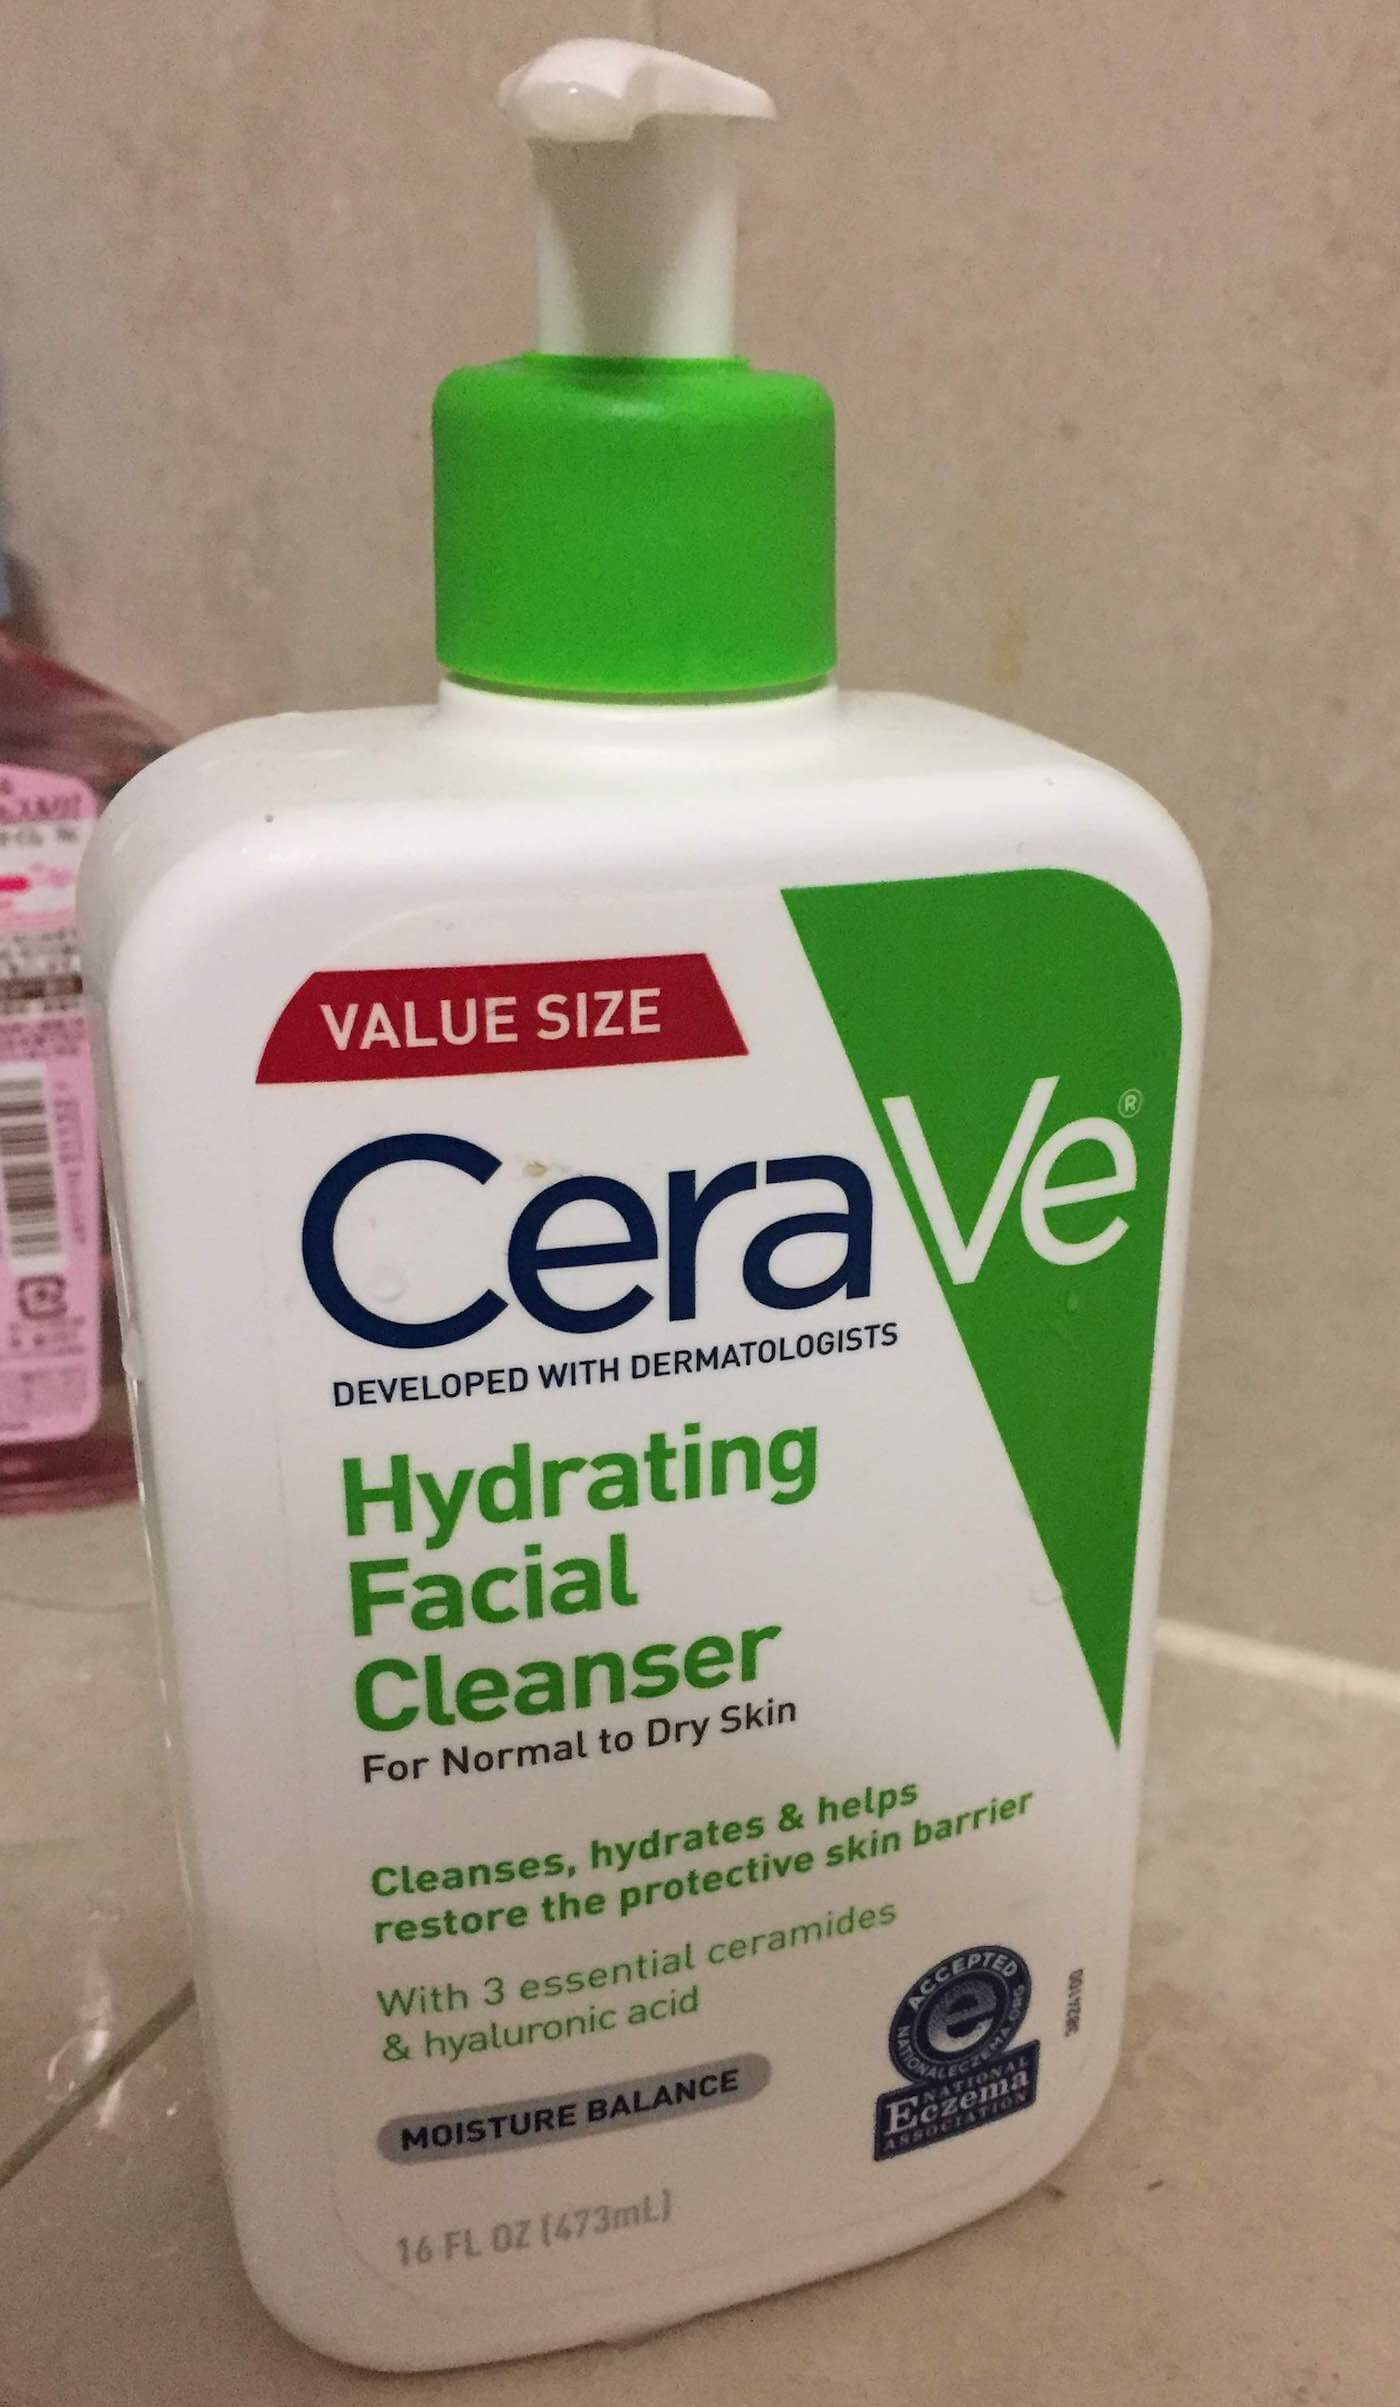 CeraVe Hydrating Facial Cleanser Review